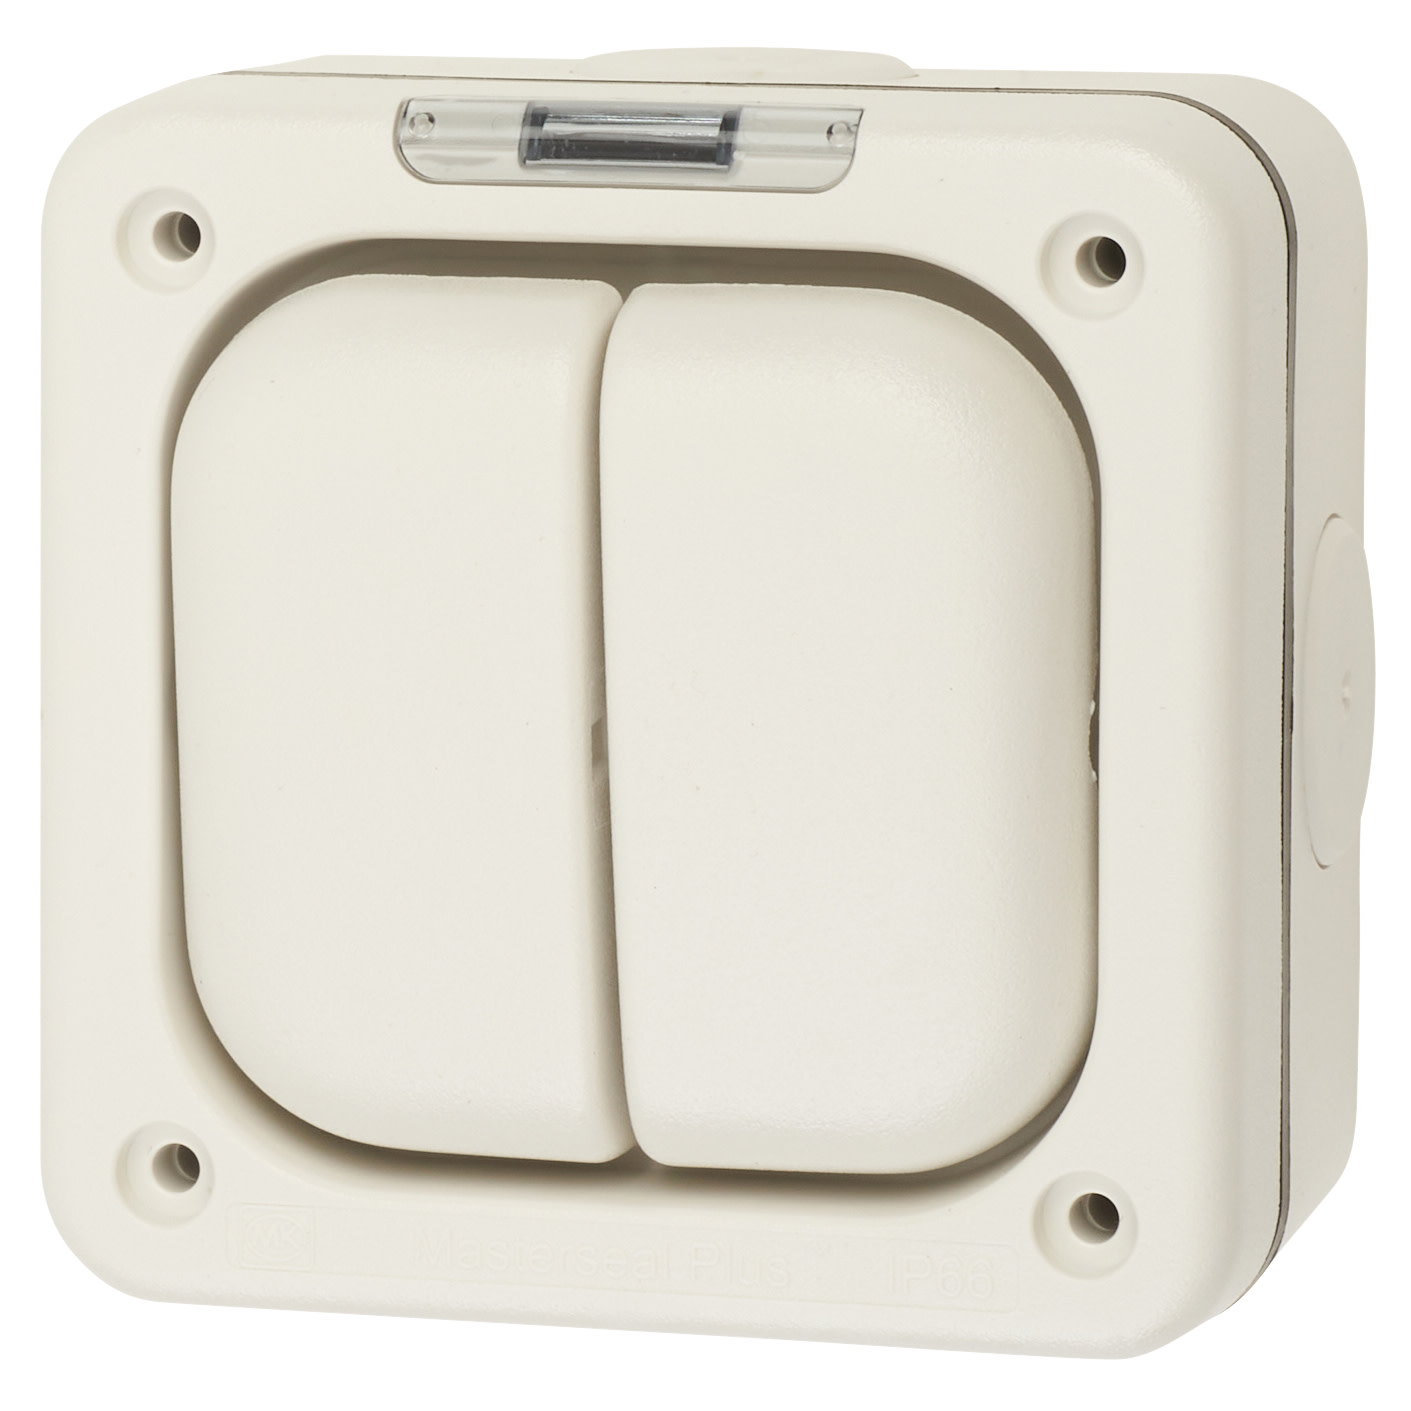 MK Masterseal Plus 10A IP66 2 Gang 1 Way Outdoor Switch - White)